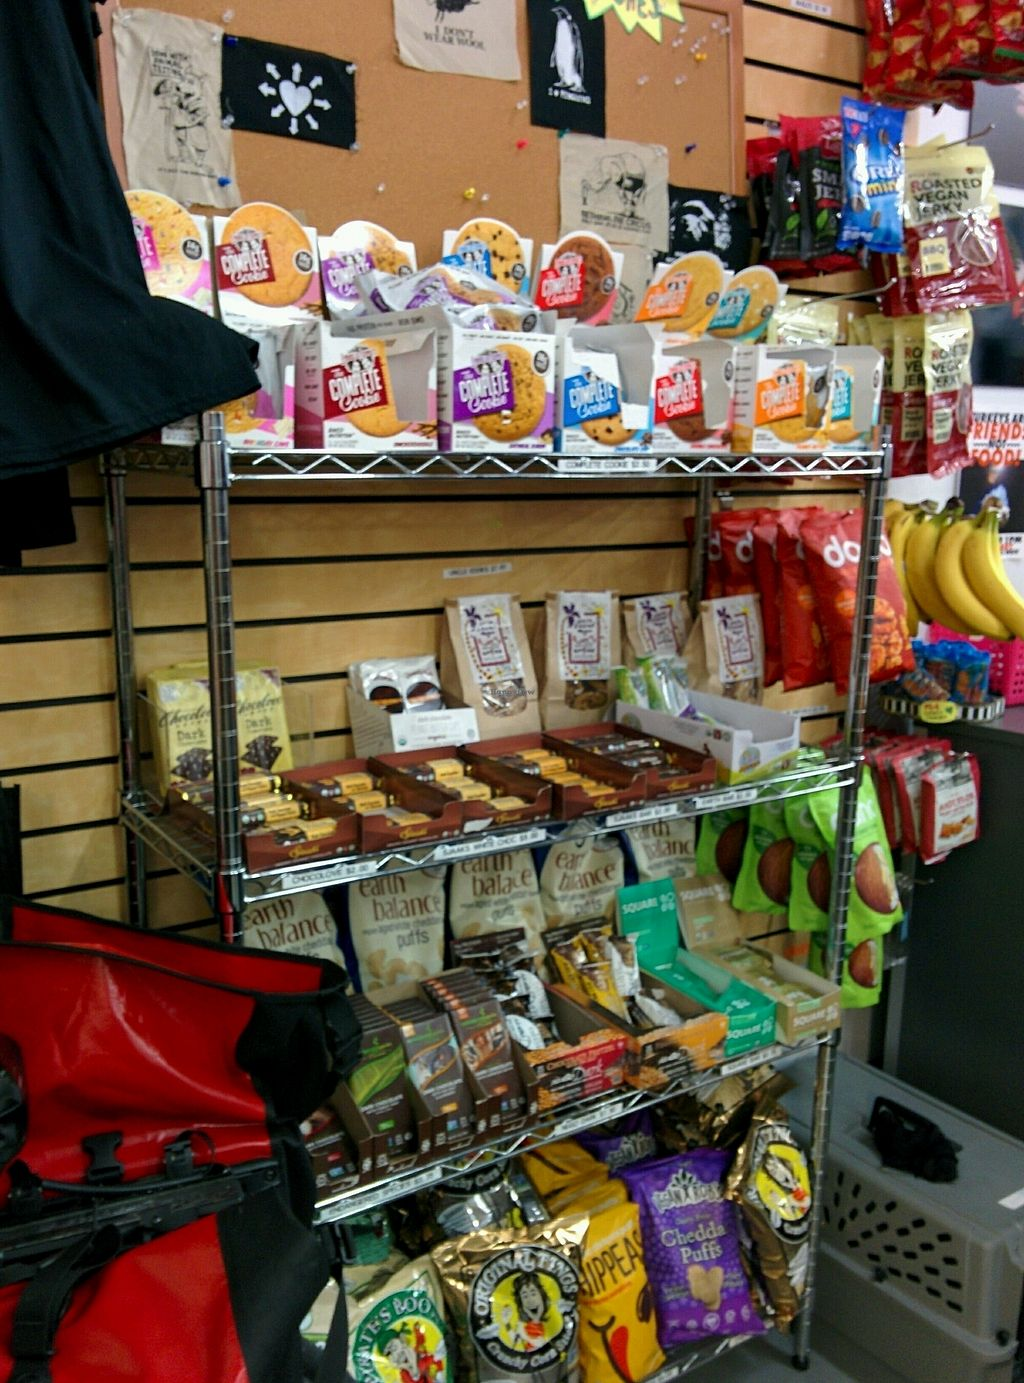 """Photo of Snacktown at the Berkeley Animal Rights Center  by <a href=""""/members/profile/MizzB"""">MizzB</a> <br/>snacks <br/> November 20, 2017  - <a href='/contact/abuse/image/95000/327620'>Report</a>"""